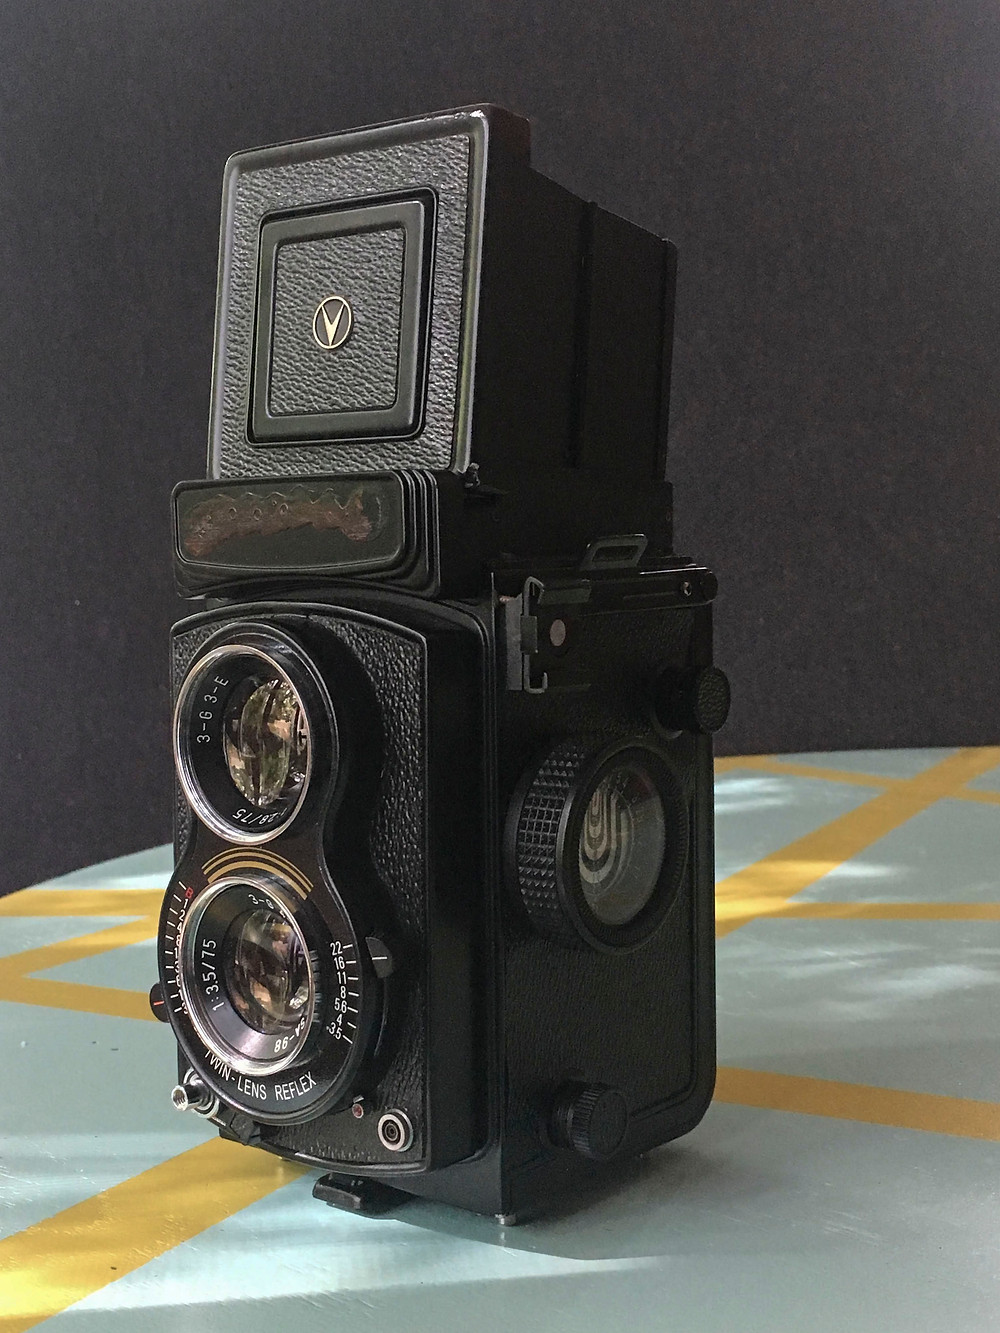 camera, black, twin lens reflex, film, analog, photography